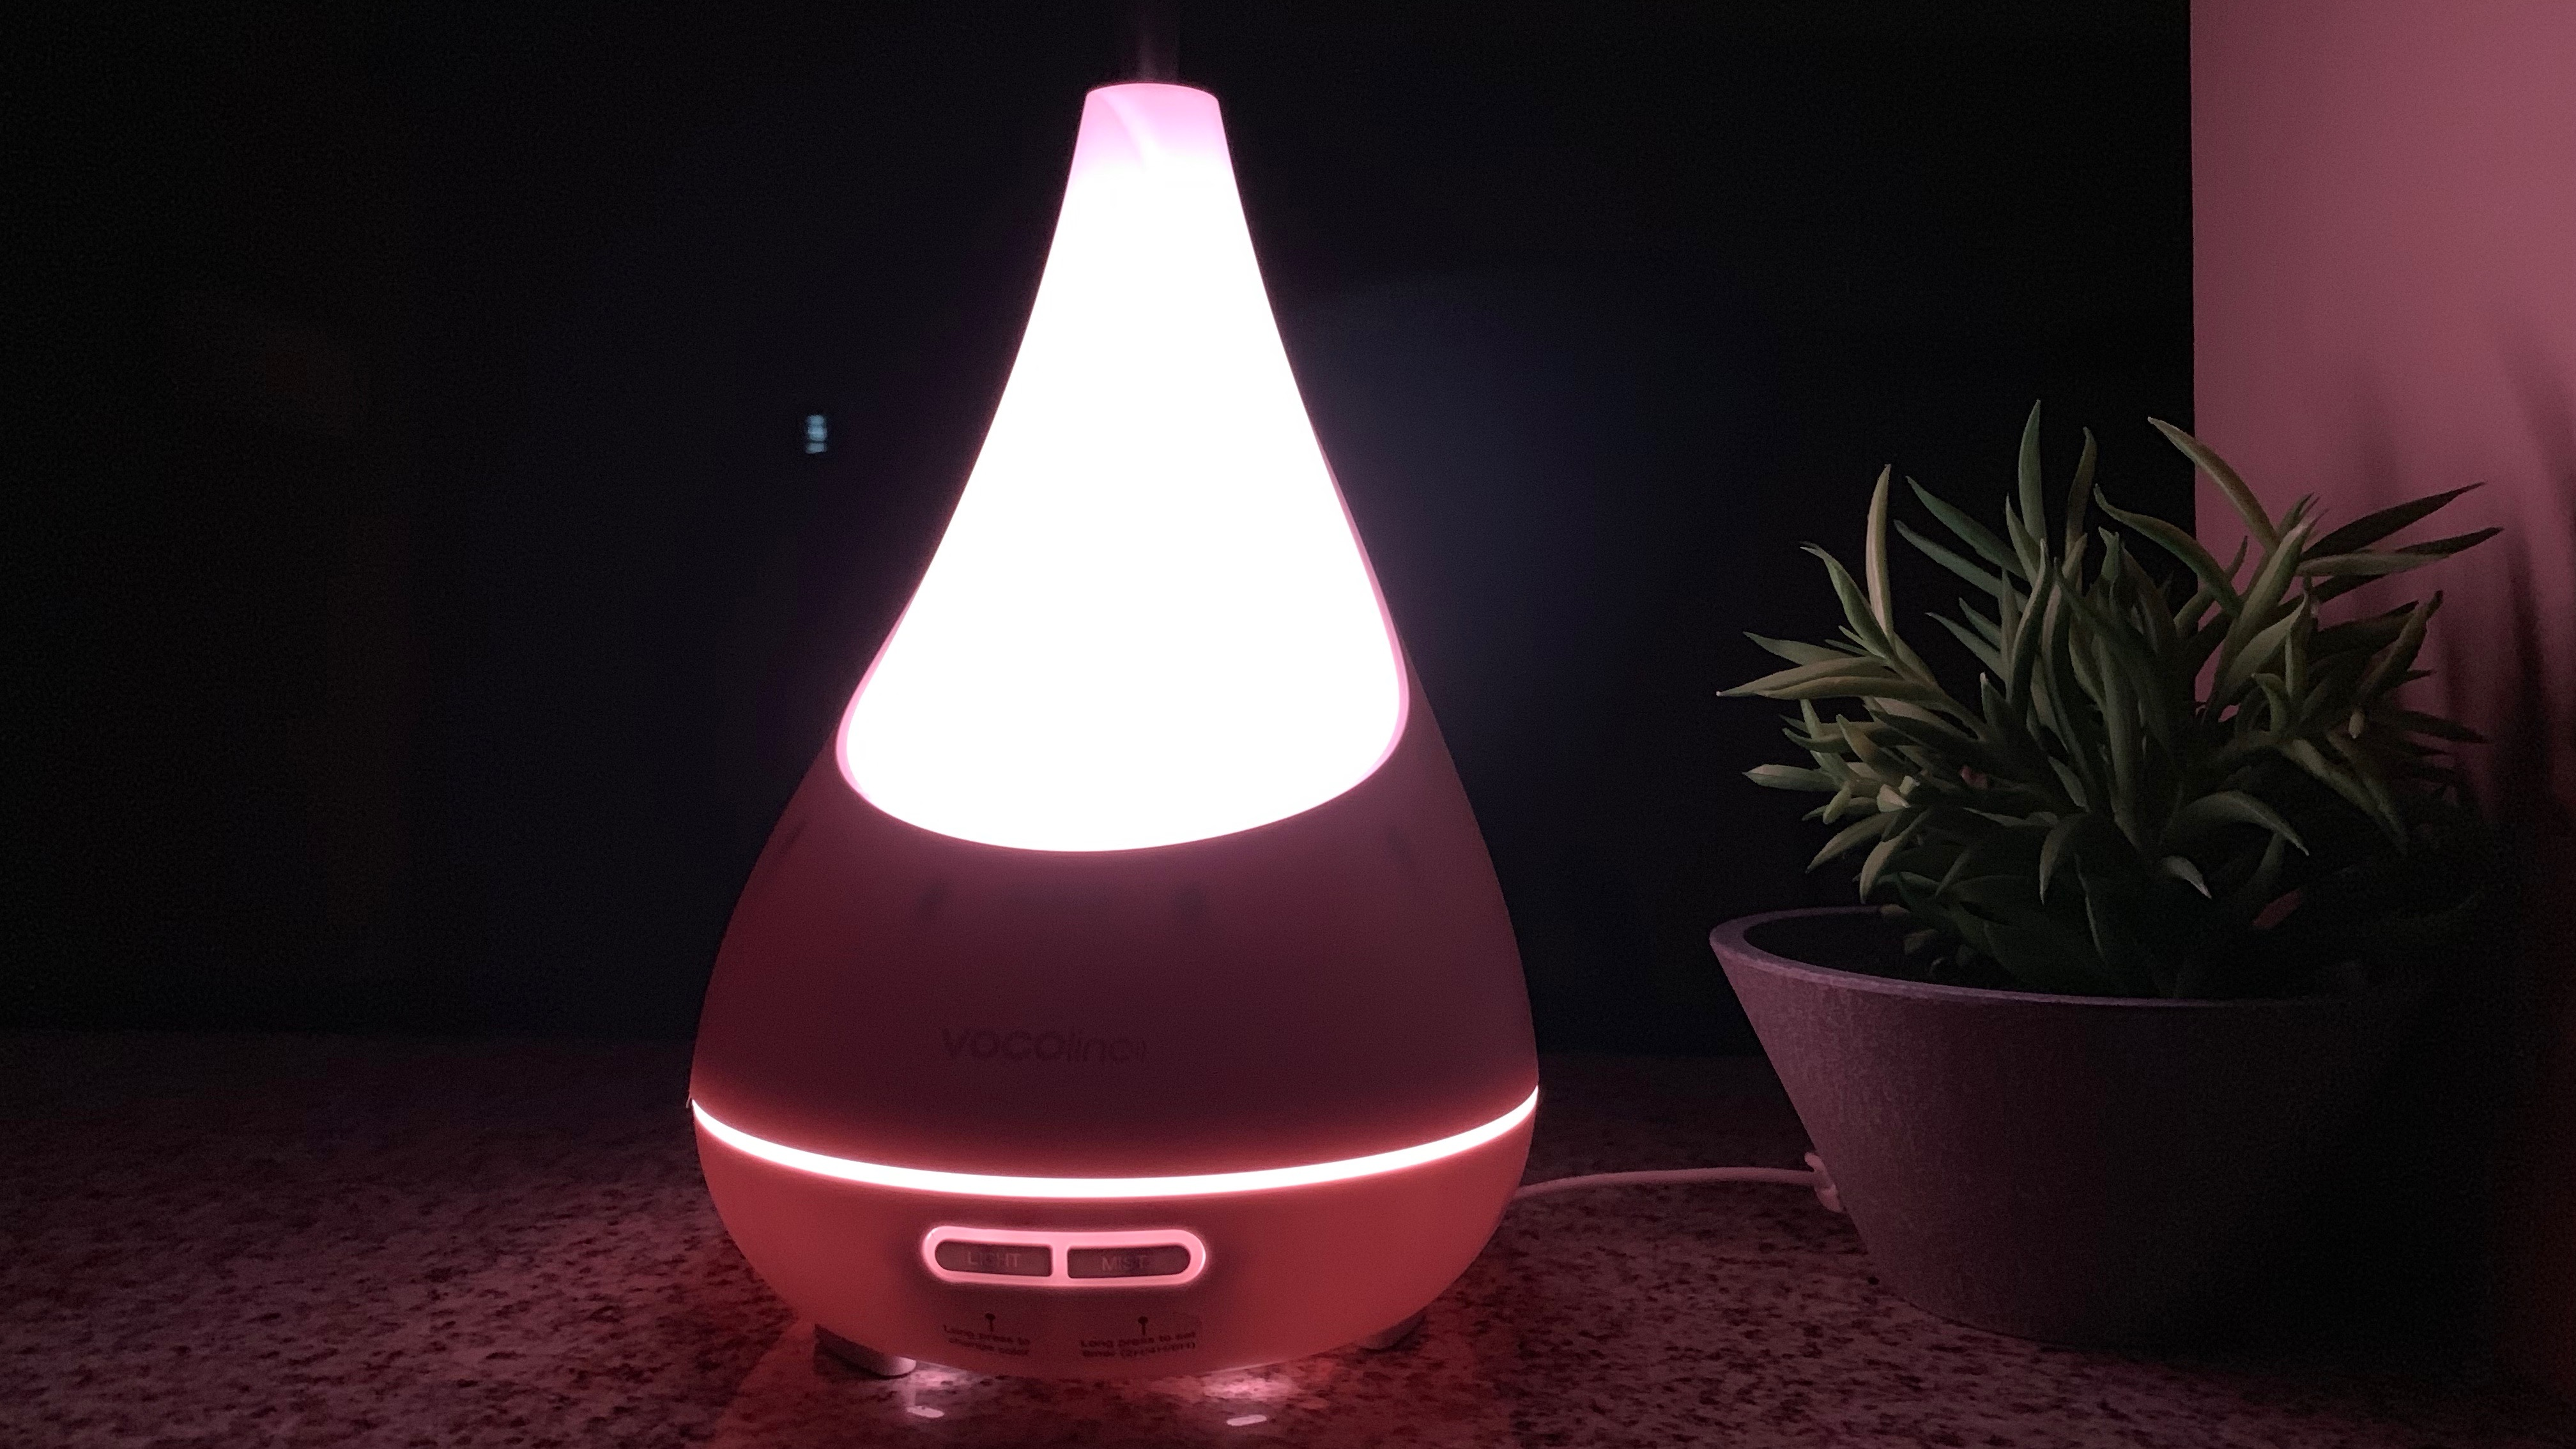 HomeKit Weekly: VOCOlinc's FlowerBud combines a Siri-controlled diffuser with a cool mood lamp